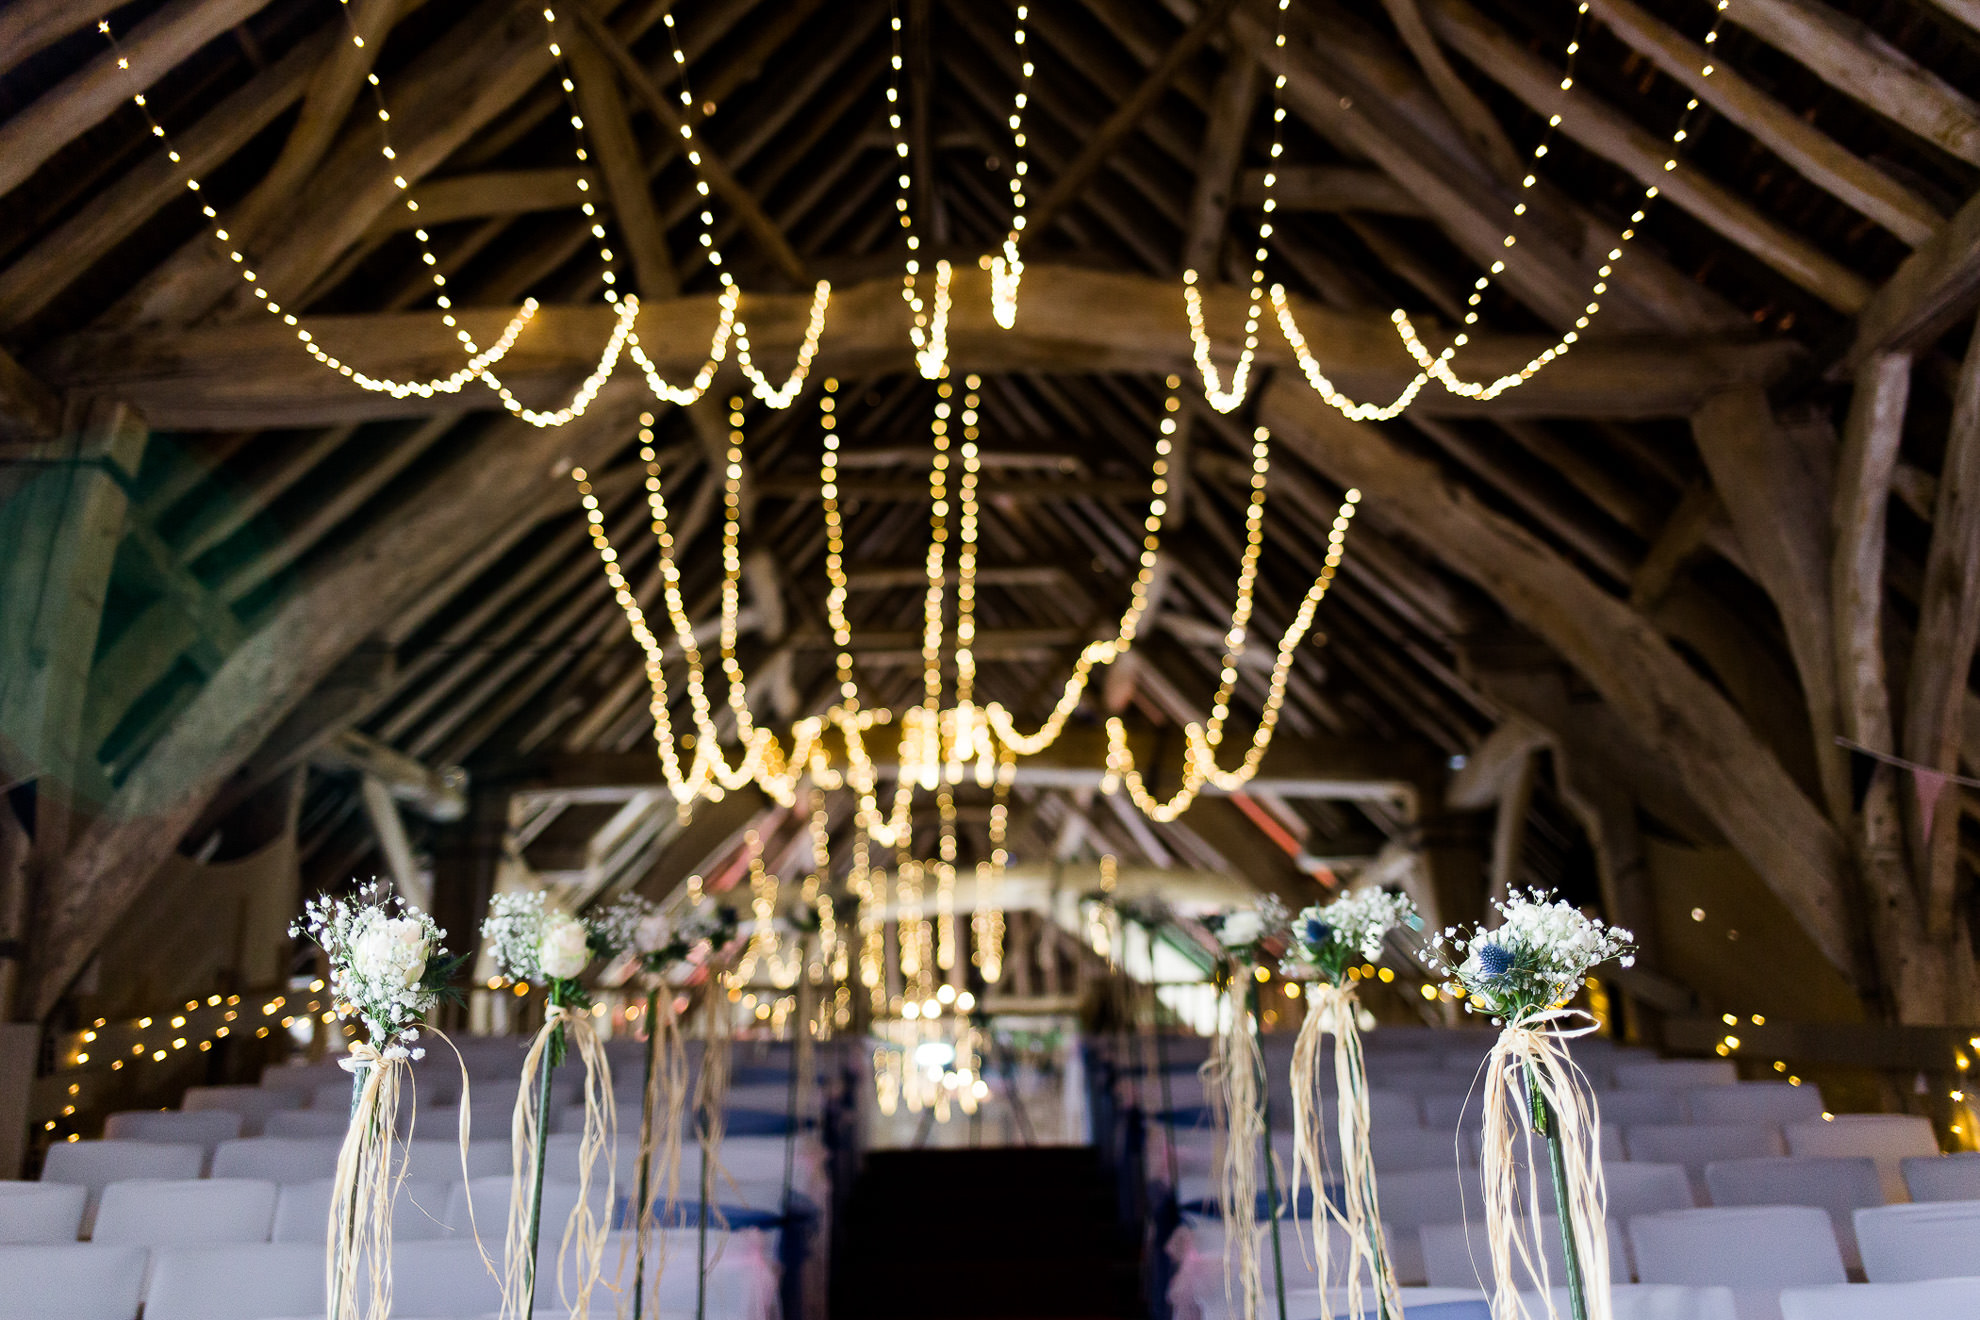 interior of the ceremony space at tichfield barn wedding vneue in hampshire